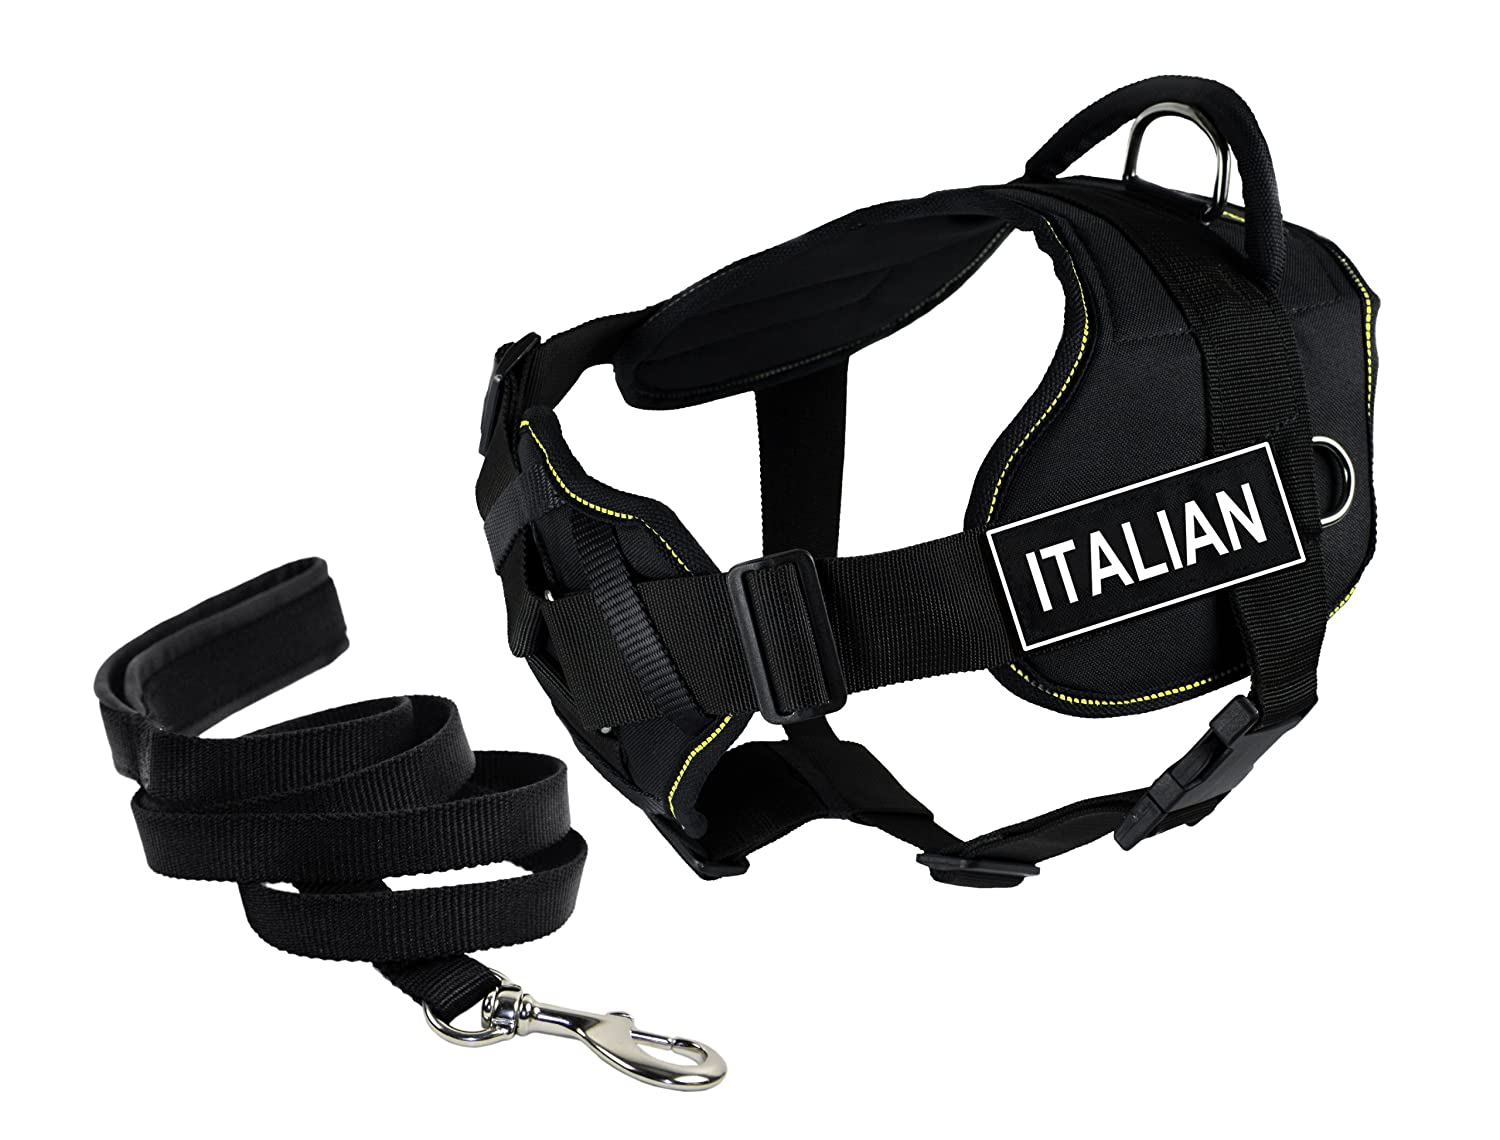 Dean & Tyler's DT Fun Chest Support ITALIAN Harness, Large, with 6 ft Padded Puppy Leash.